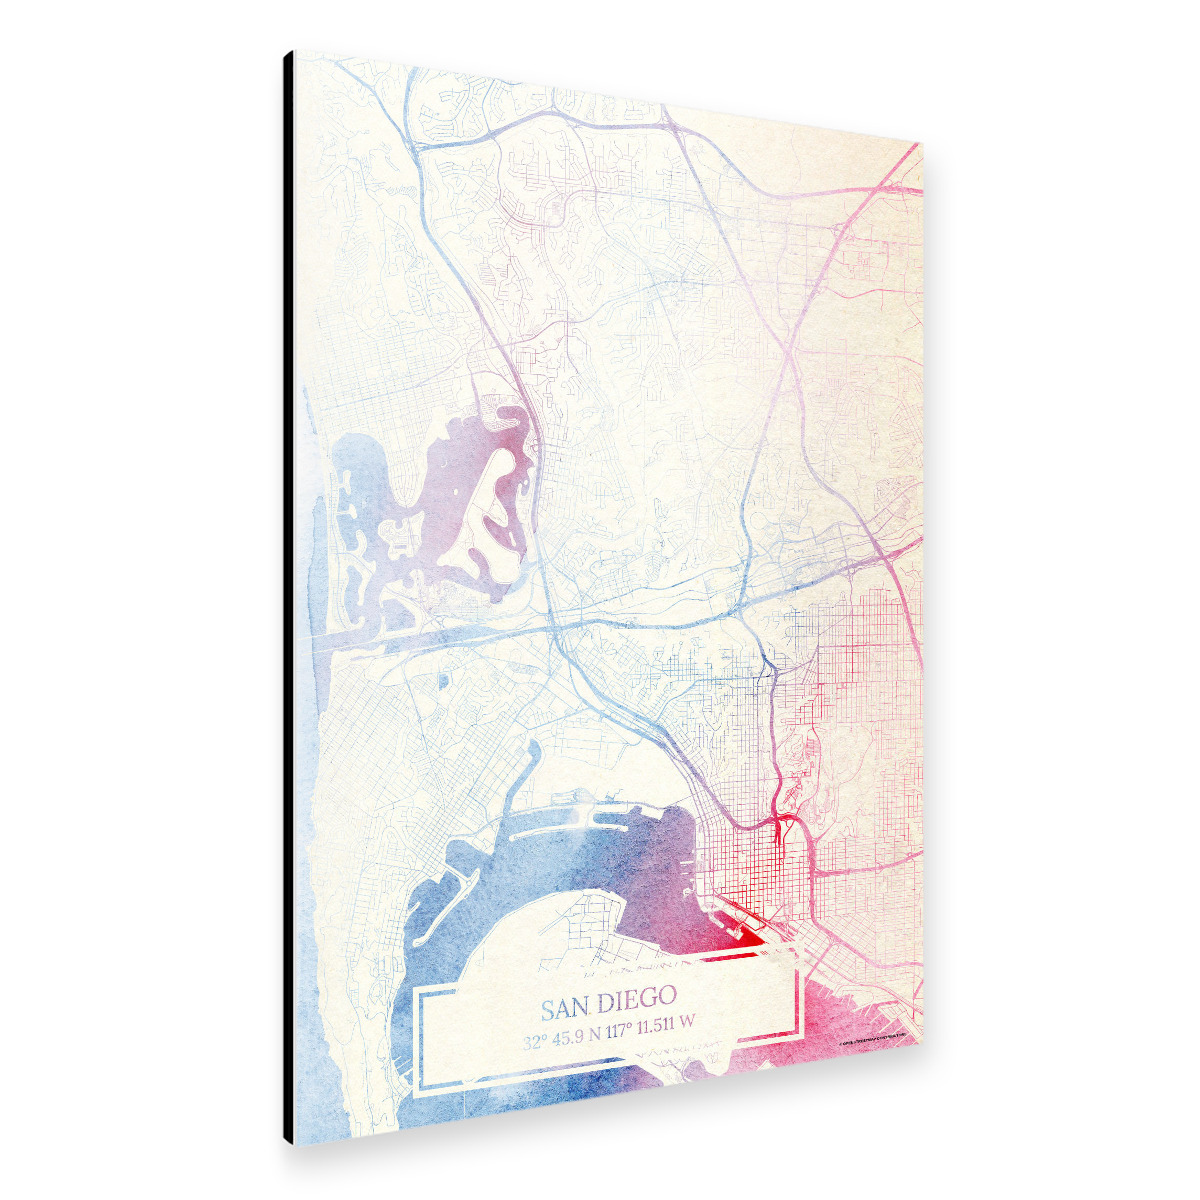 San-Diego USA Map Rose And Serenity II als Alu-Print bei ...